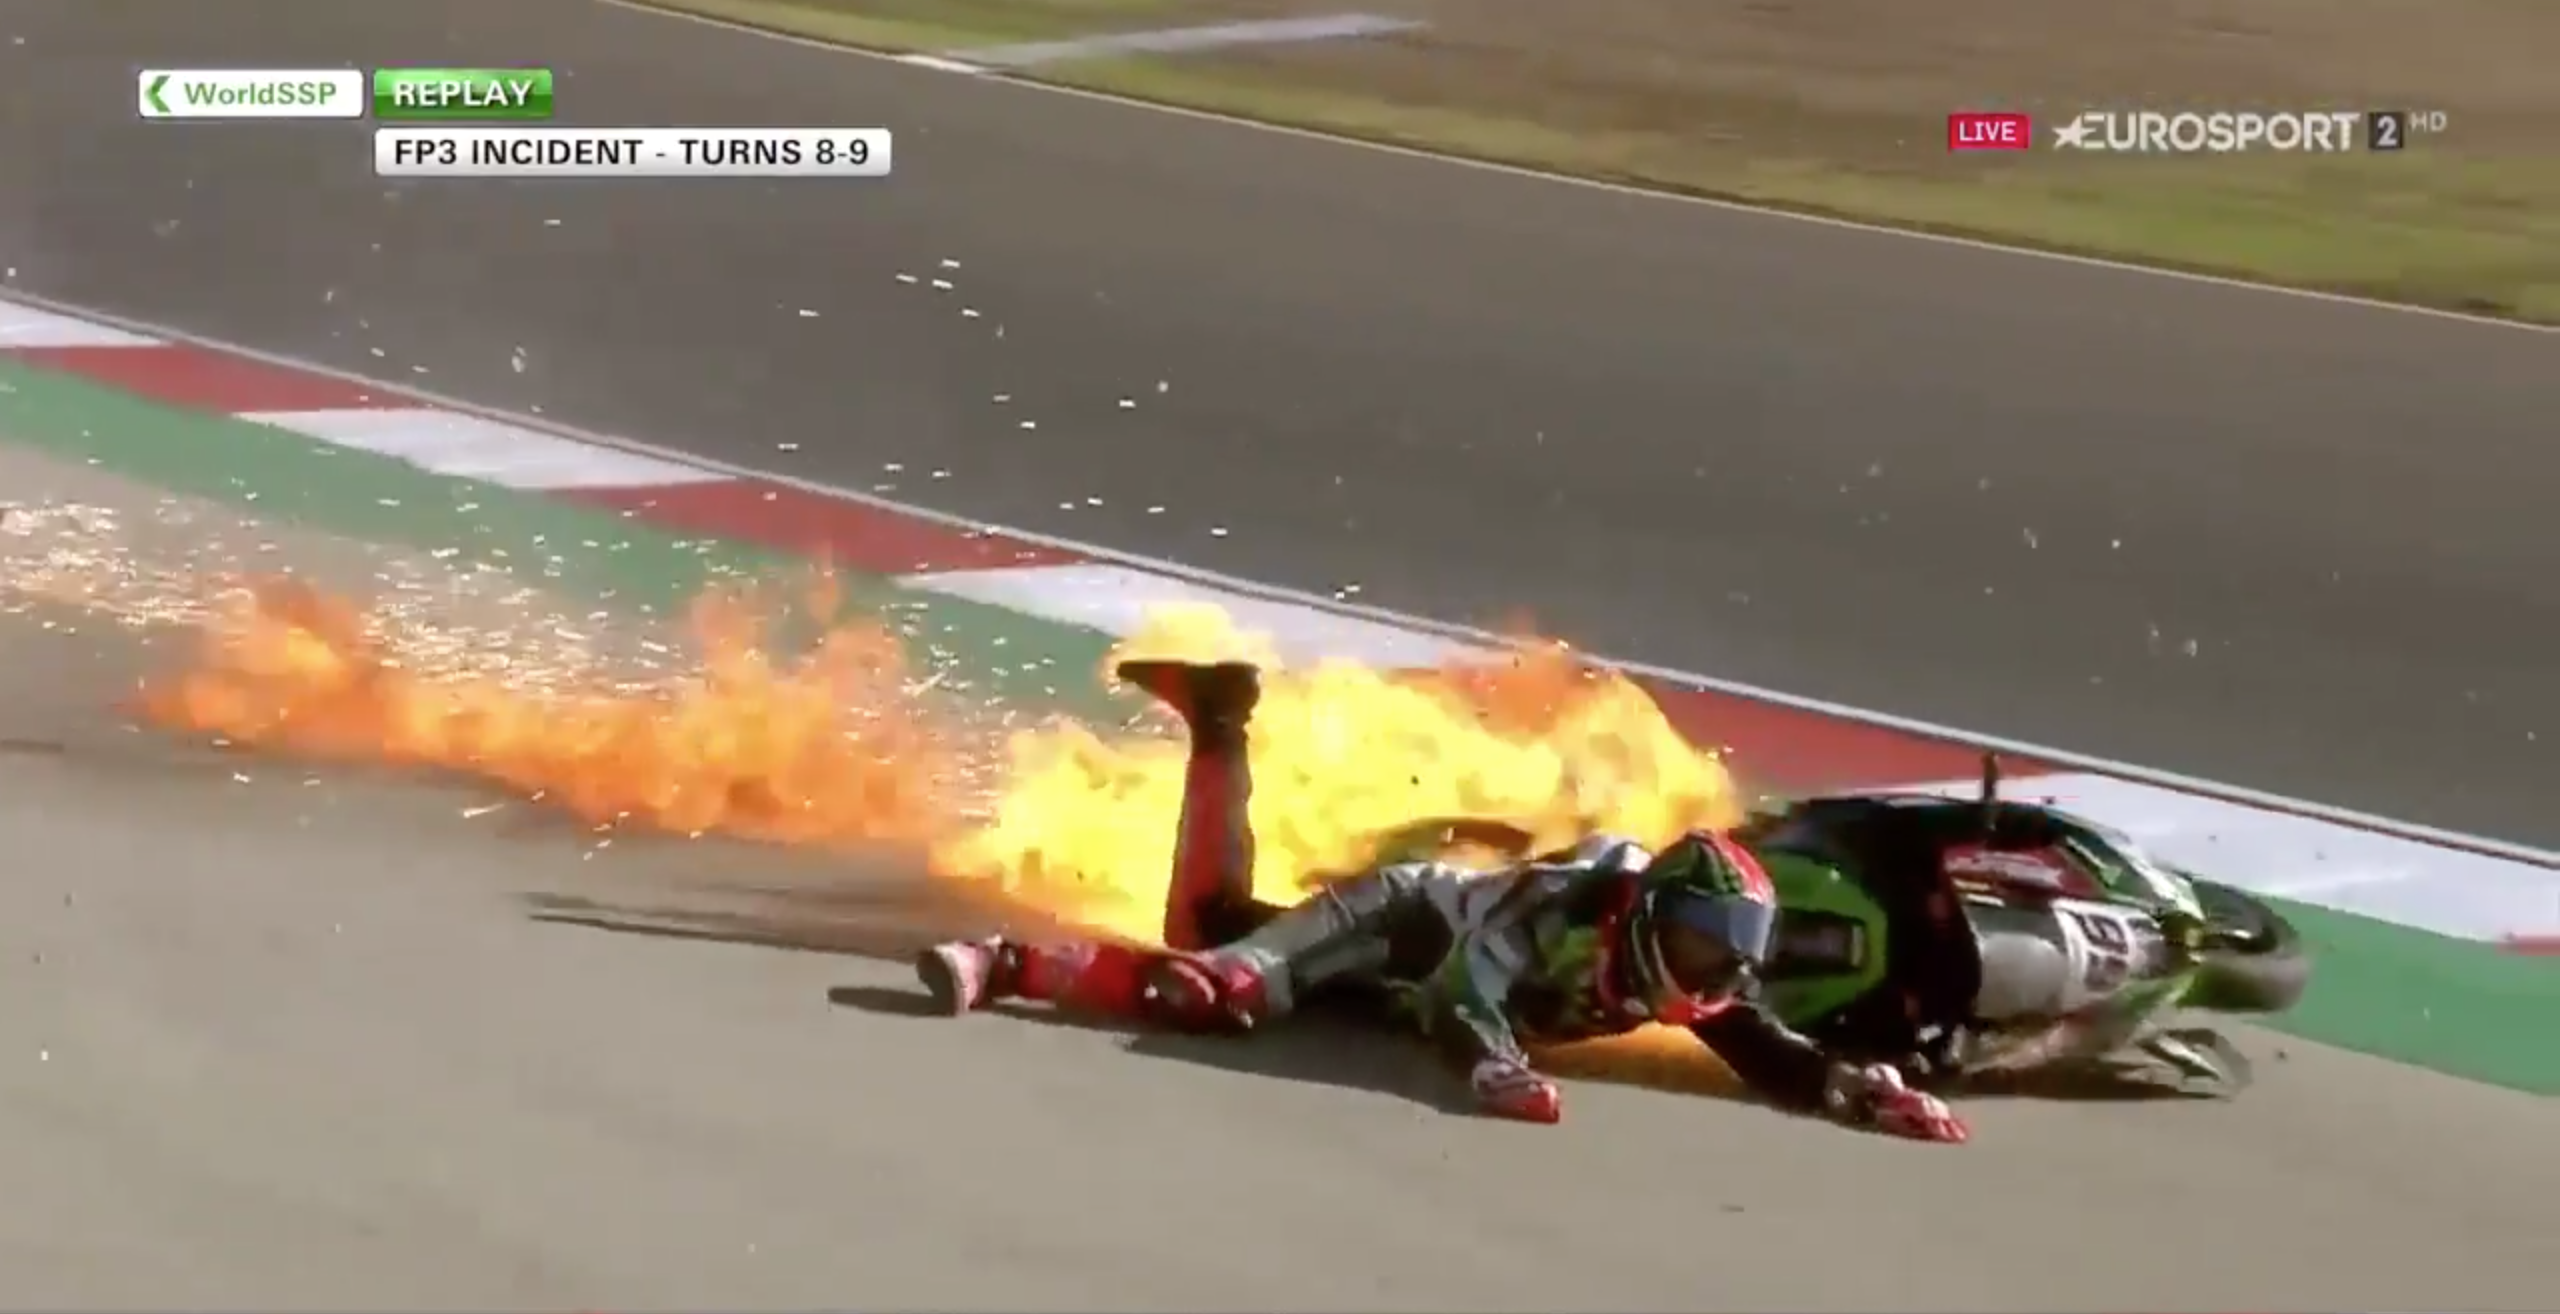 WATCH: Superbike Rider Tom Sykes Lucky To Be Alive After Insane Fireball Crash!